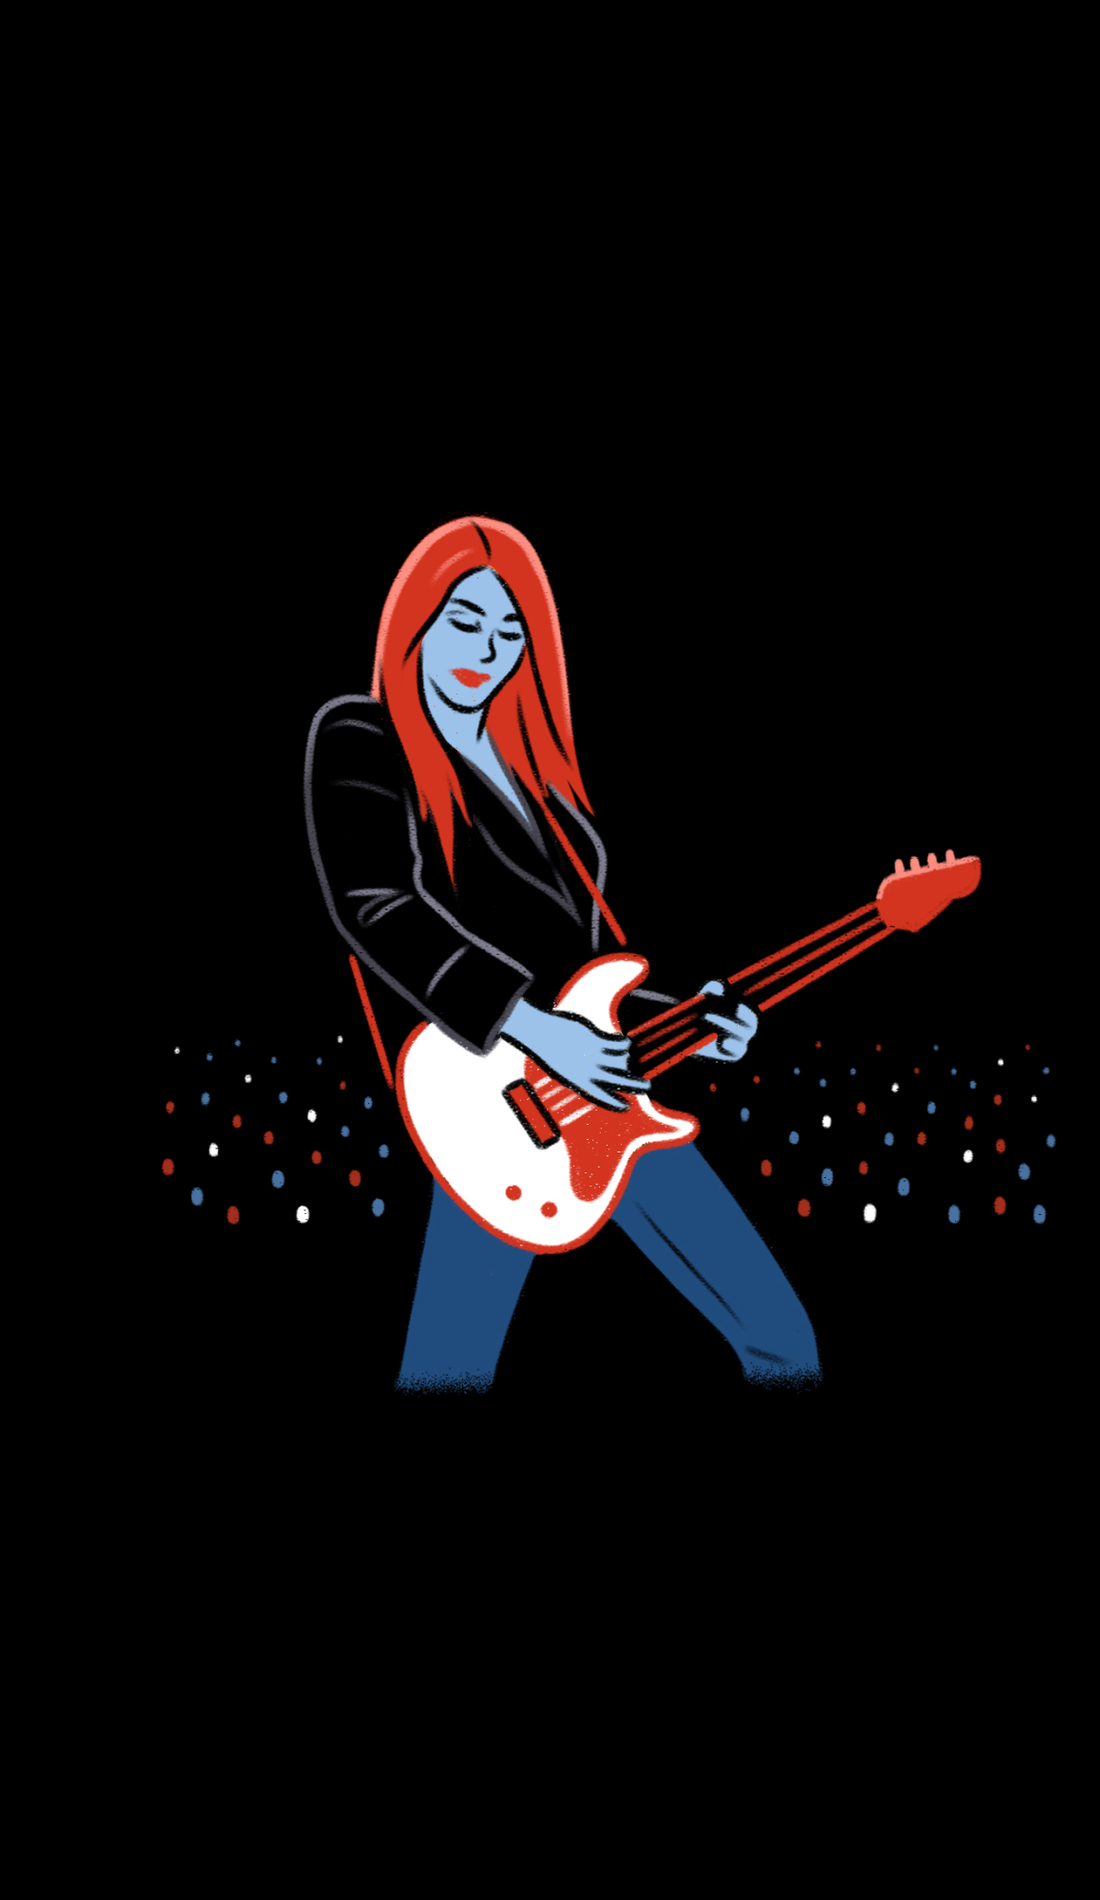 A Freaknight live event